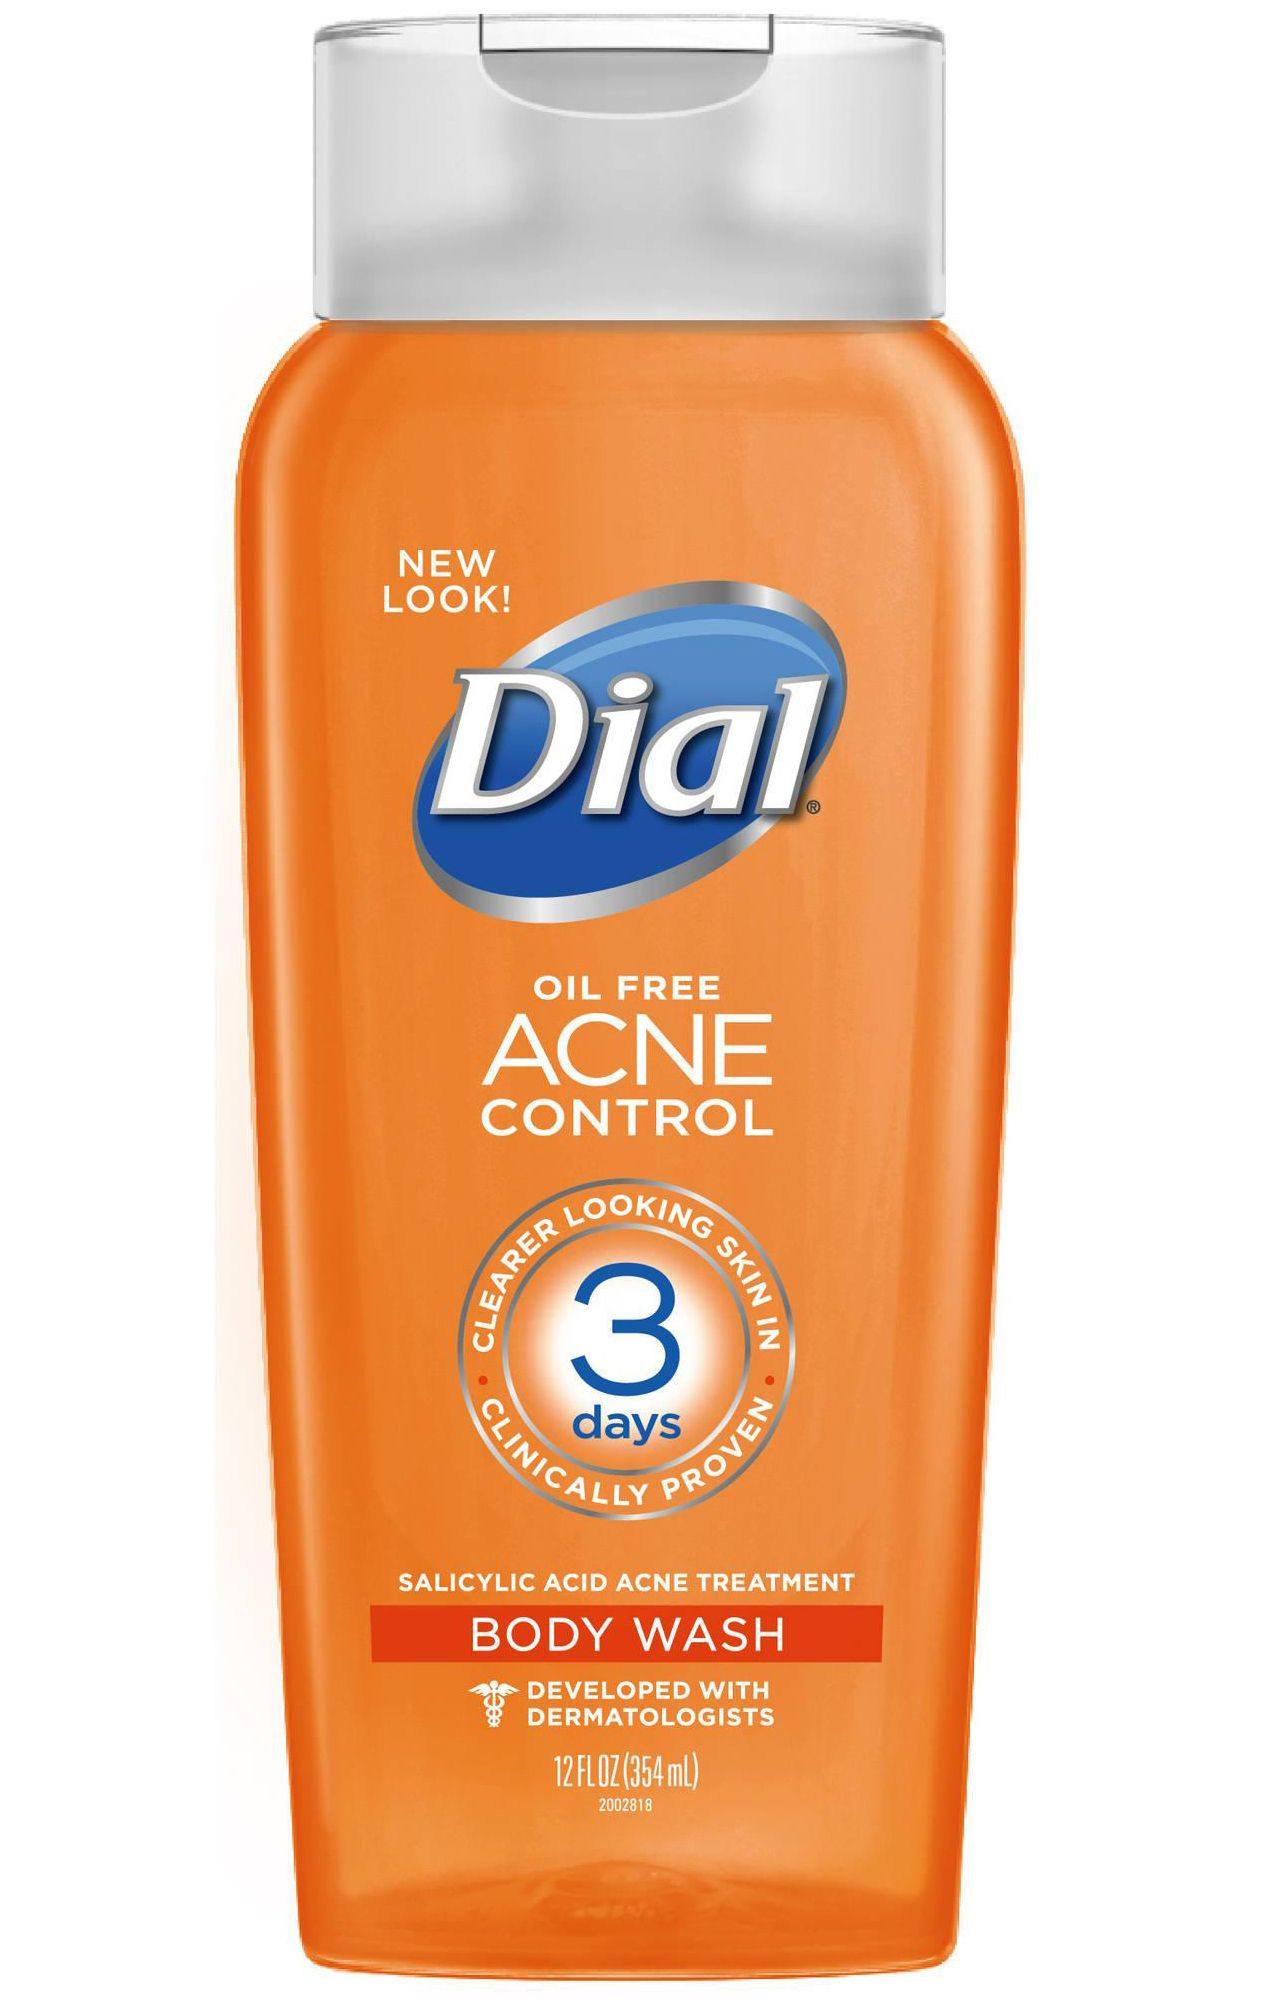 The Best Drugstore Acne Products According To Reddit Acne Control Best Drugstore Acne Products Acne Body Wash